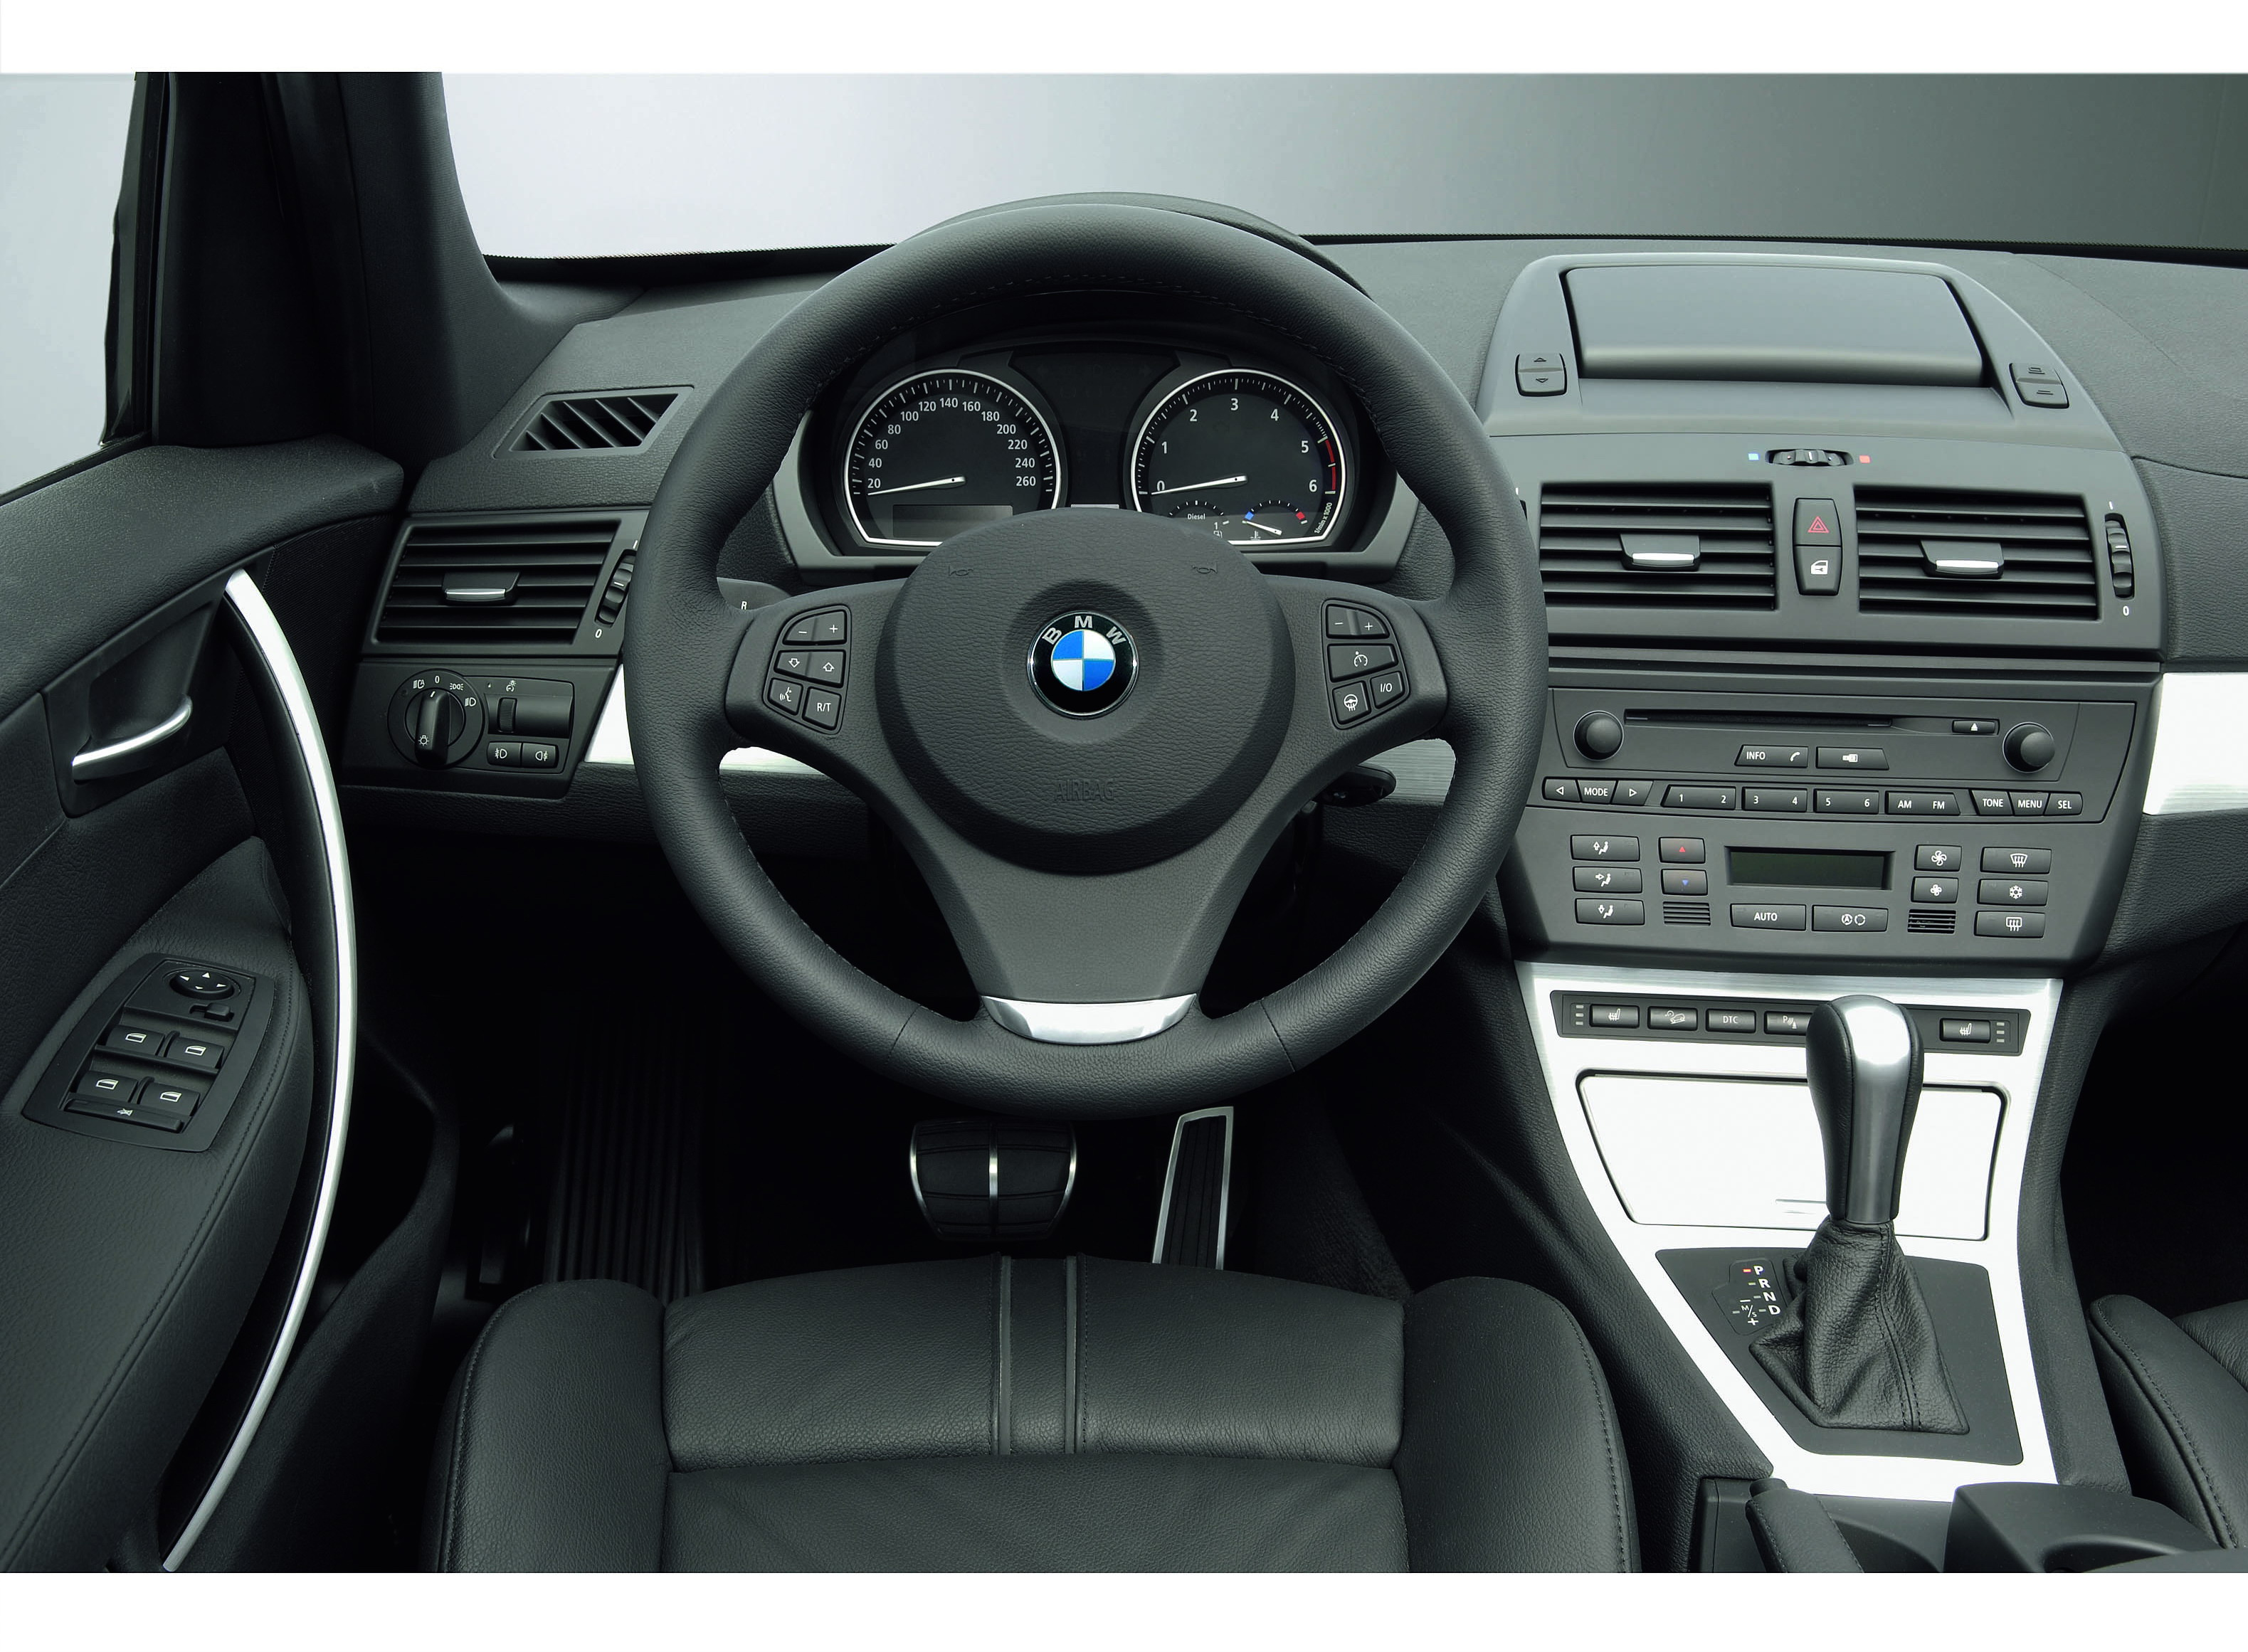 2007 bmw x3 review top speed. Black Bedroom Furniture Sets. Home Design Ideas